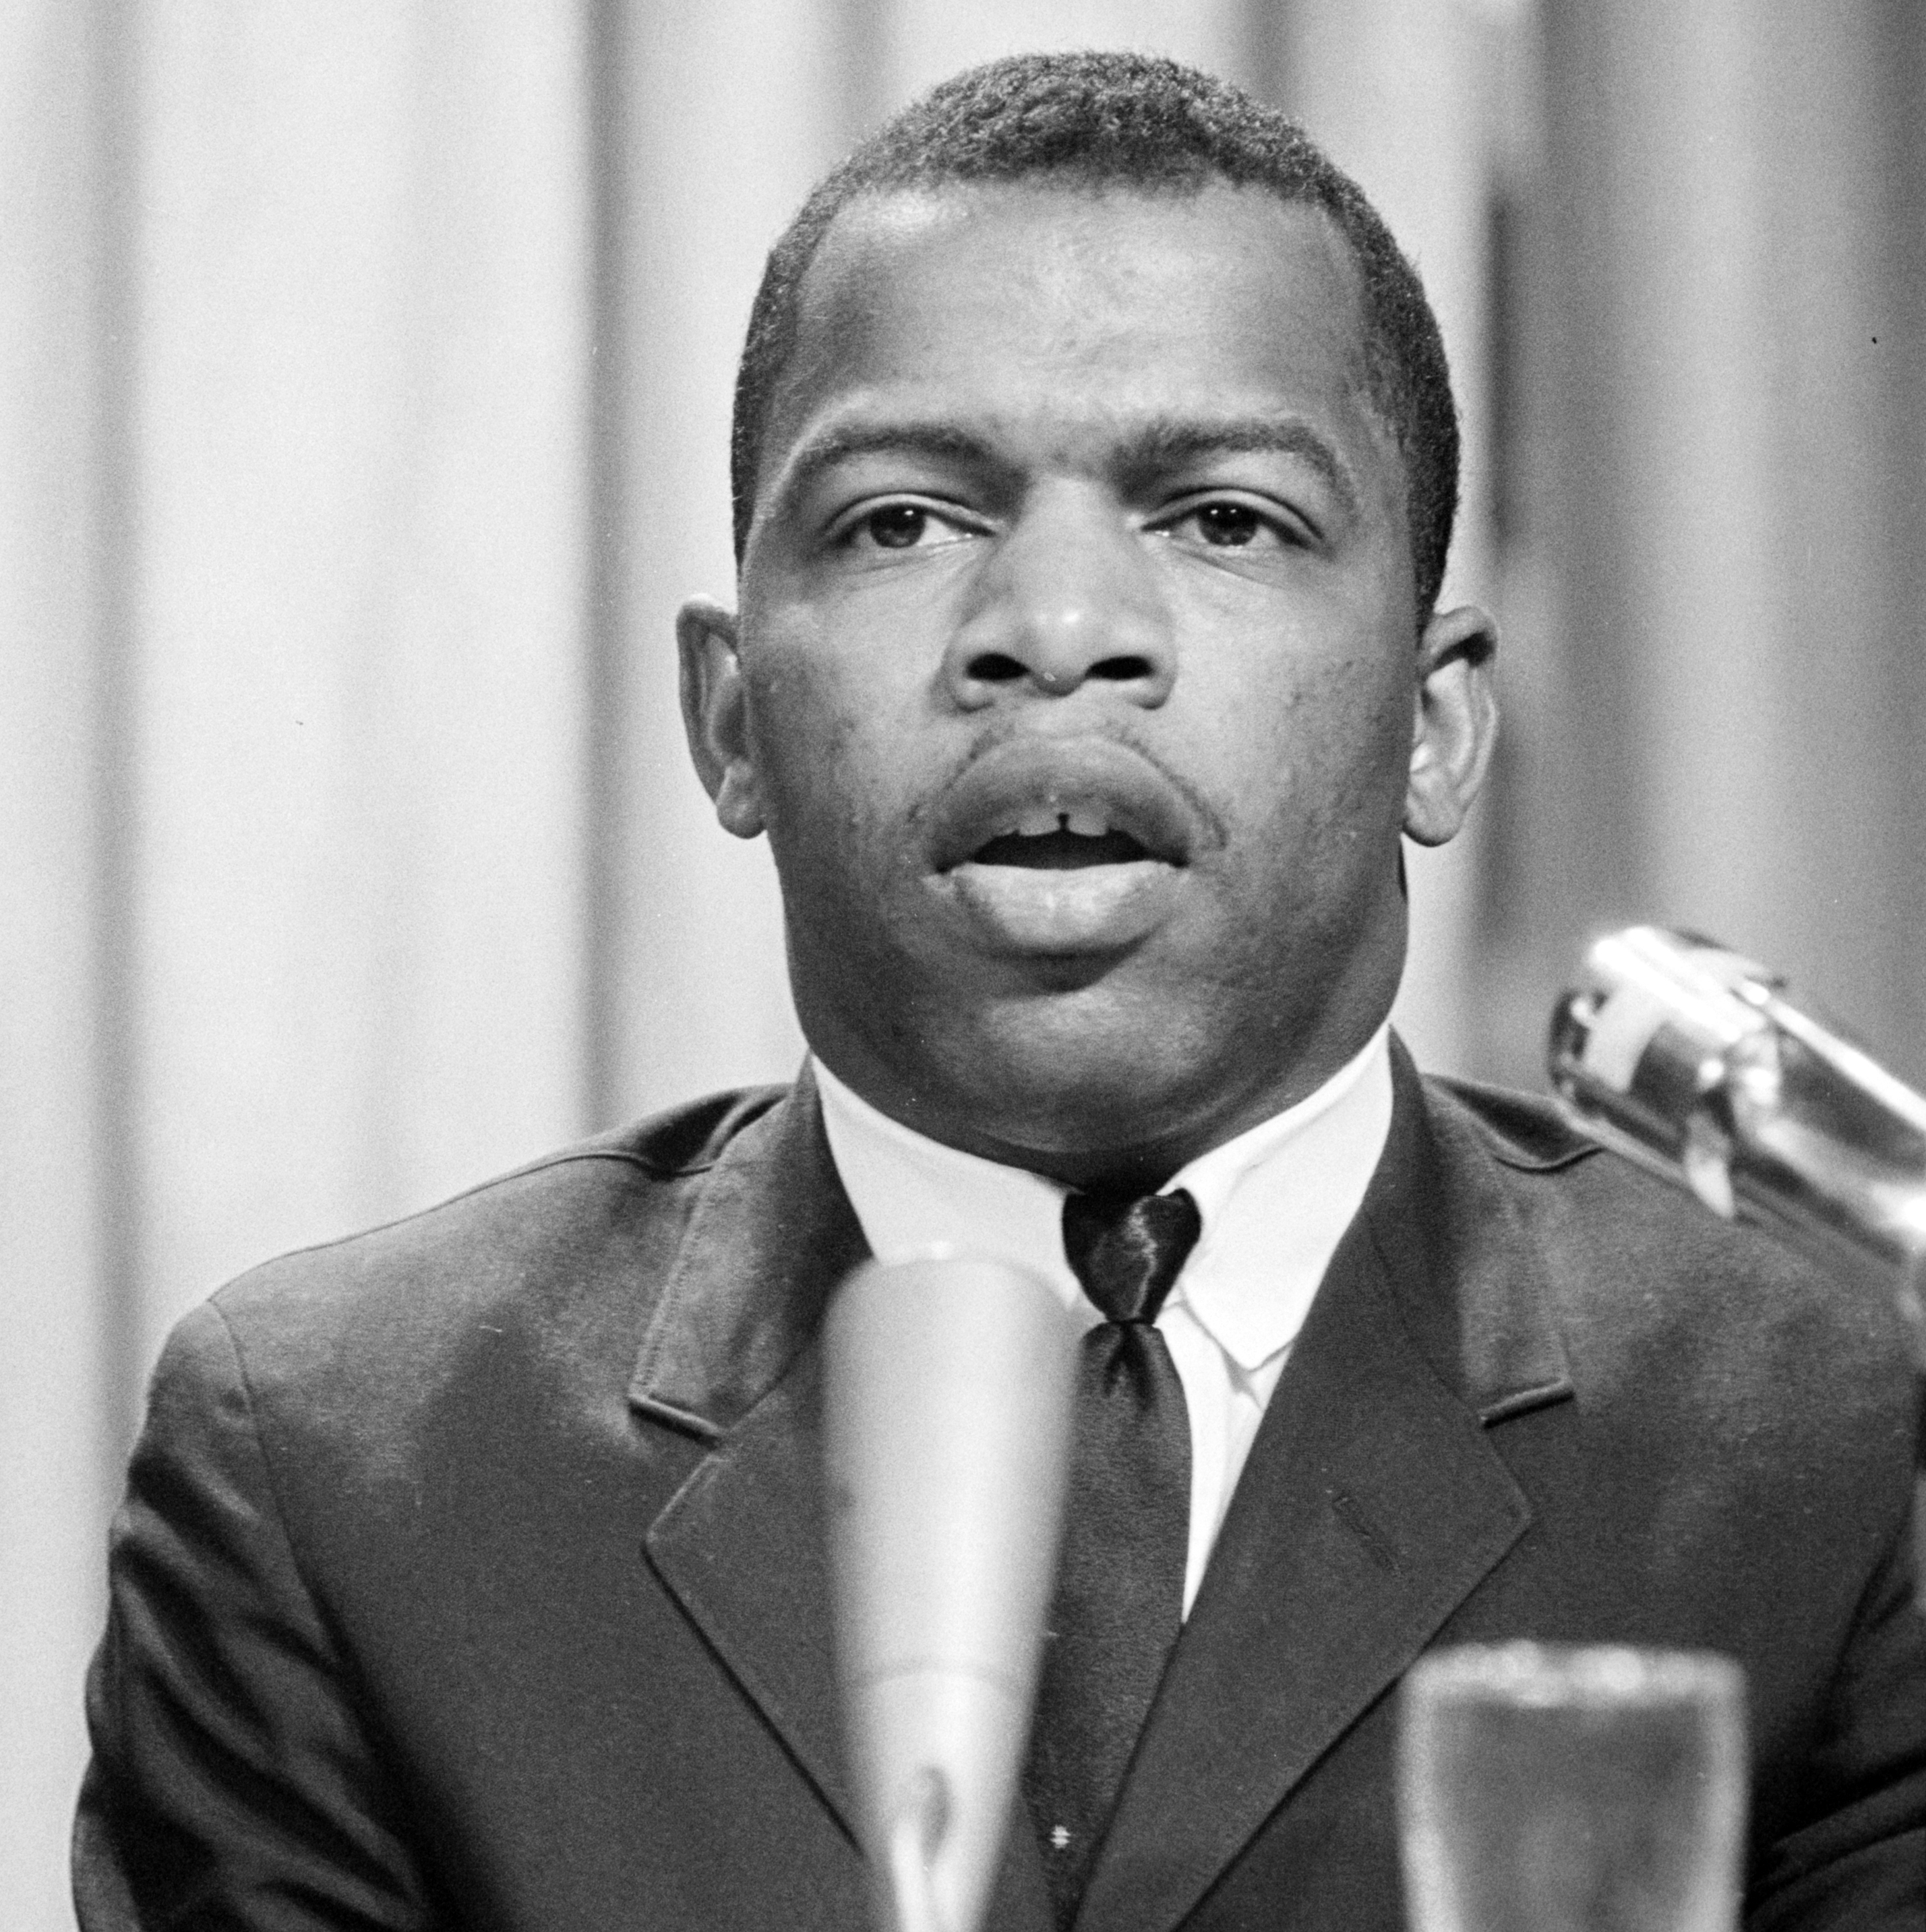 John Lewis, wearing a dark suit and tie, speaks behind a lectern in front of a rather bland gray backdrop